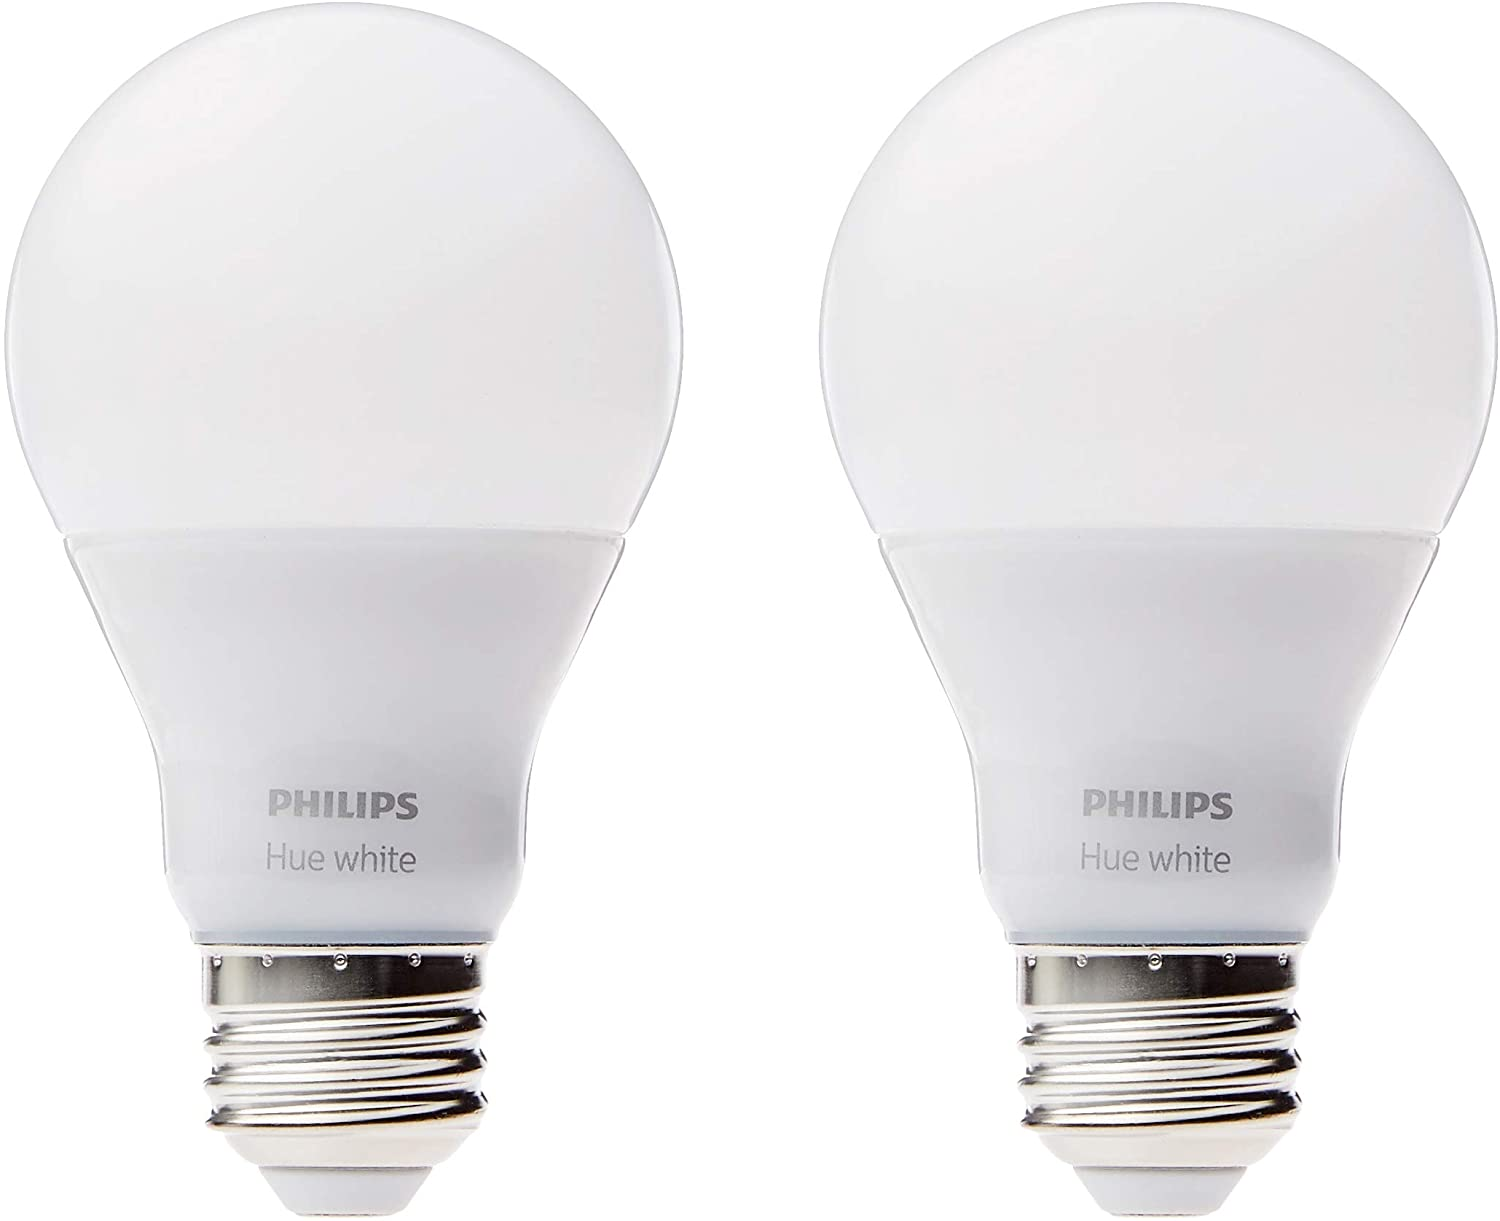 dimmable hue philips lights work with google home